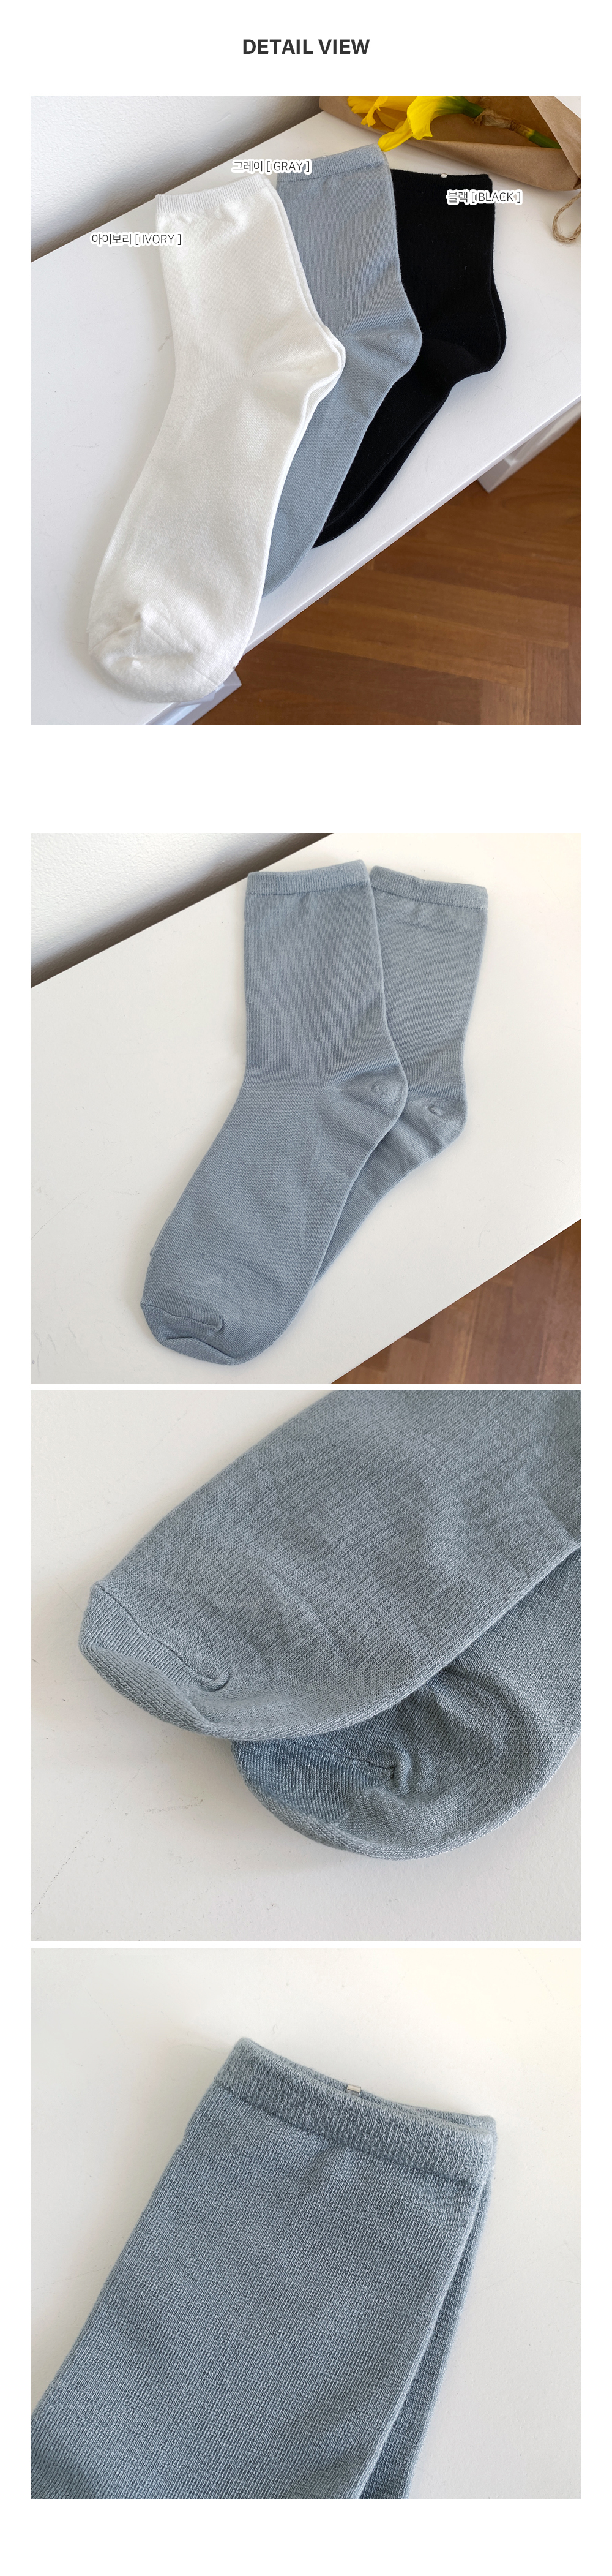 daily socks - 3color